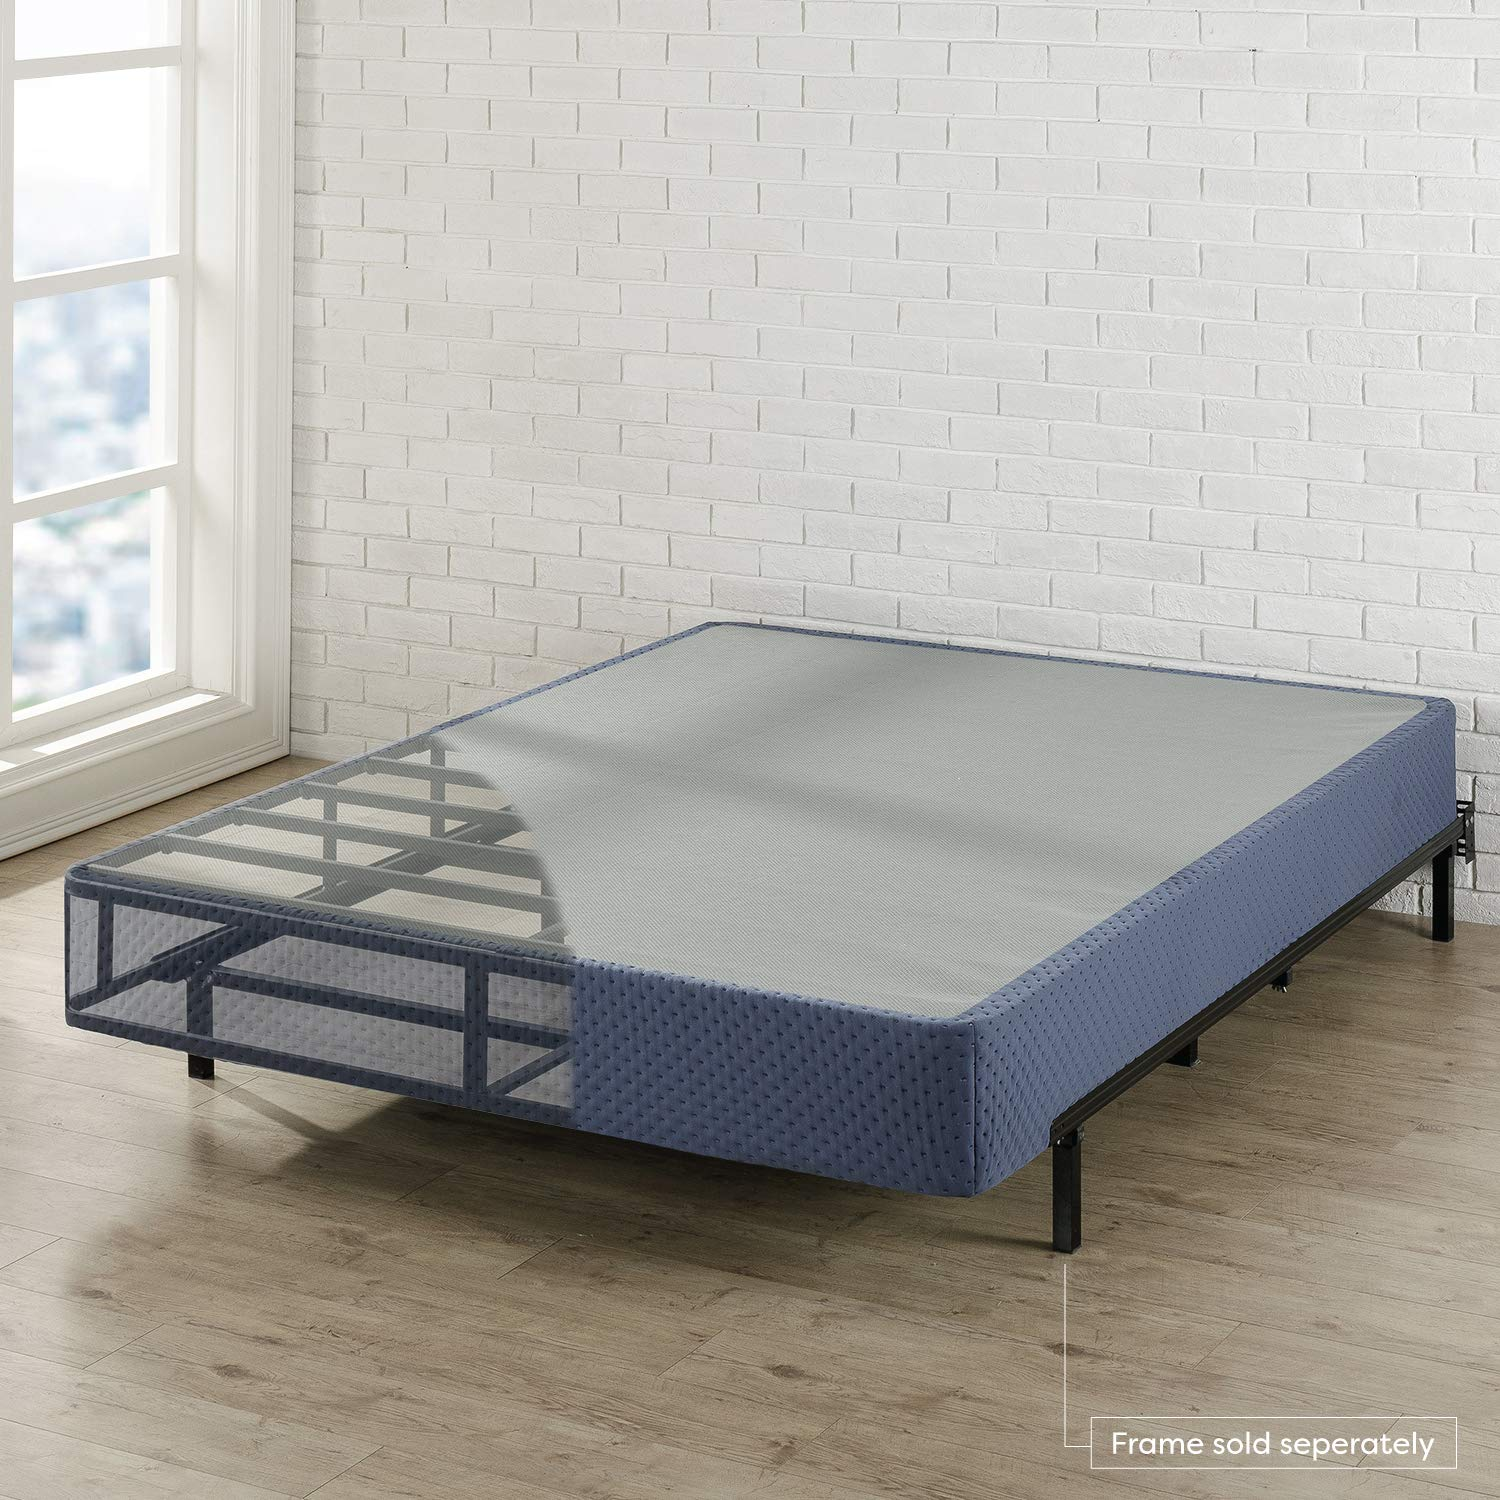 Best Price Mattress Queen Box Spring 9'' High Profile with with Heavy Duty Steel Slat Mattress Foundation Fits Standard Bed Frame, Navy